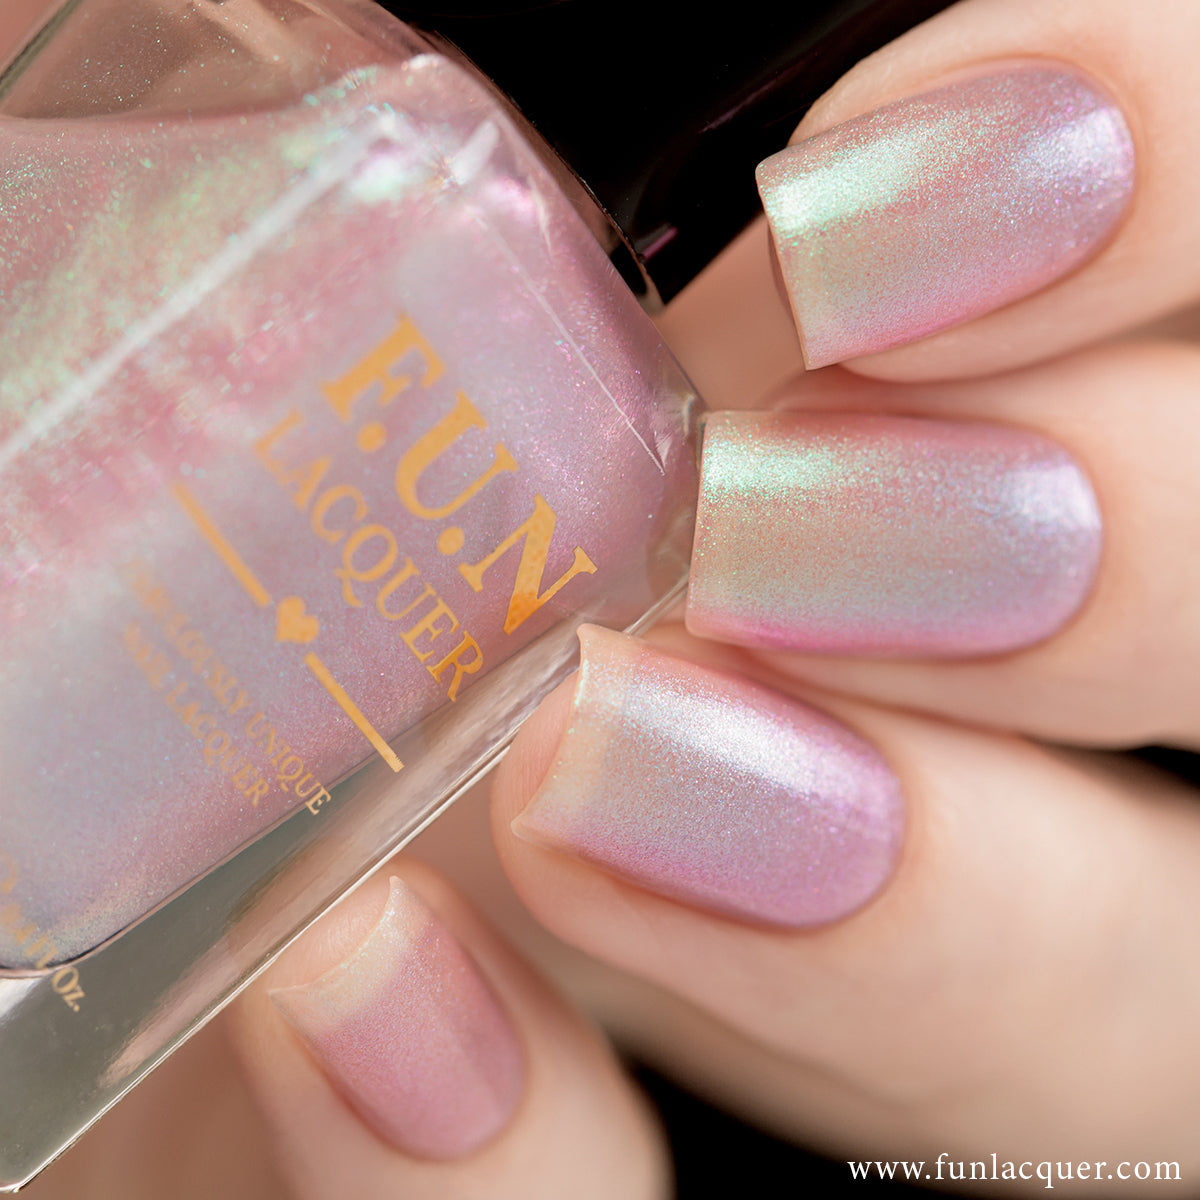 F.U.N Lacquer - Mermaid